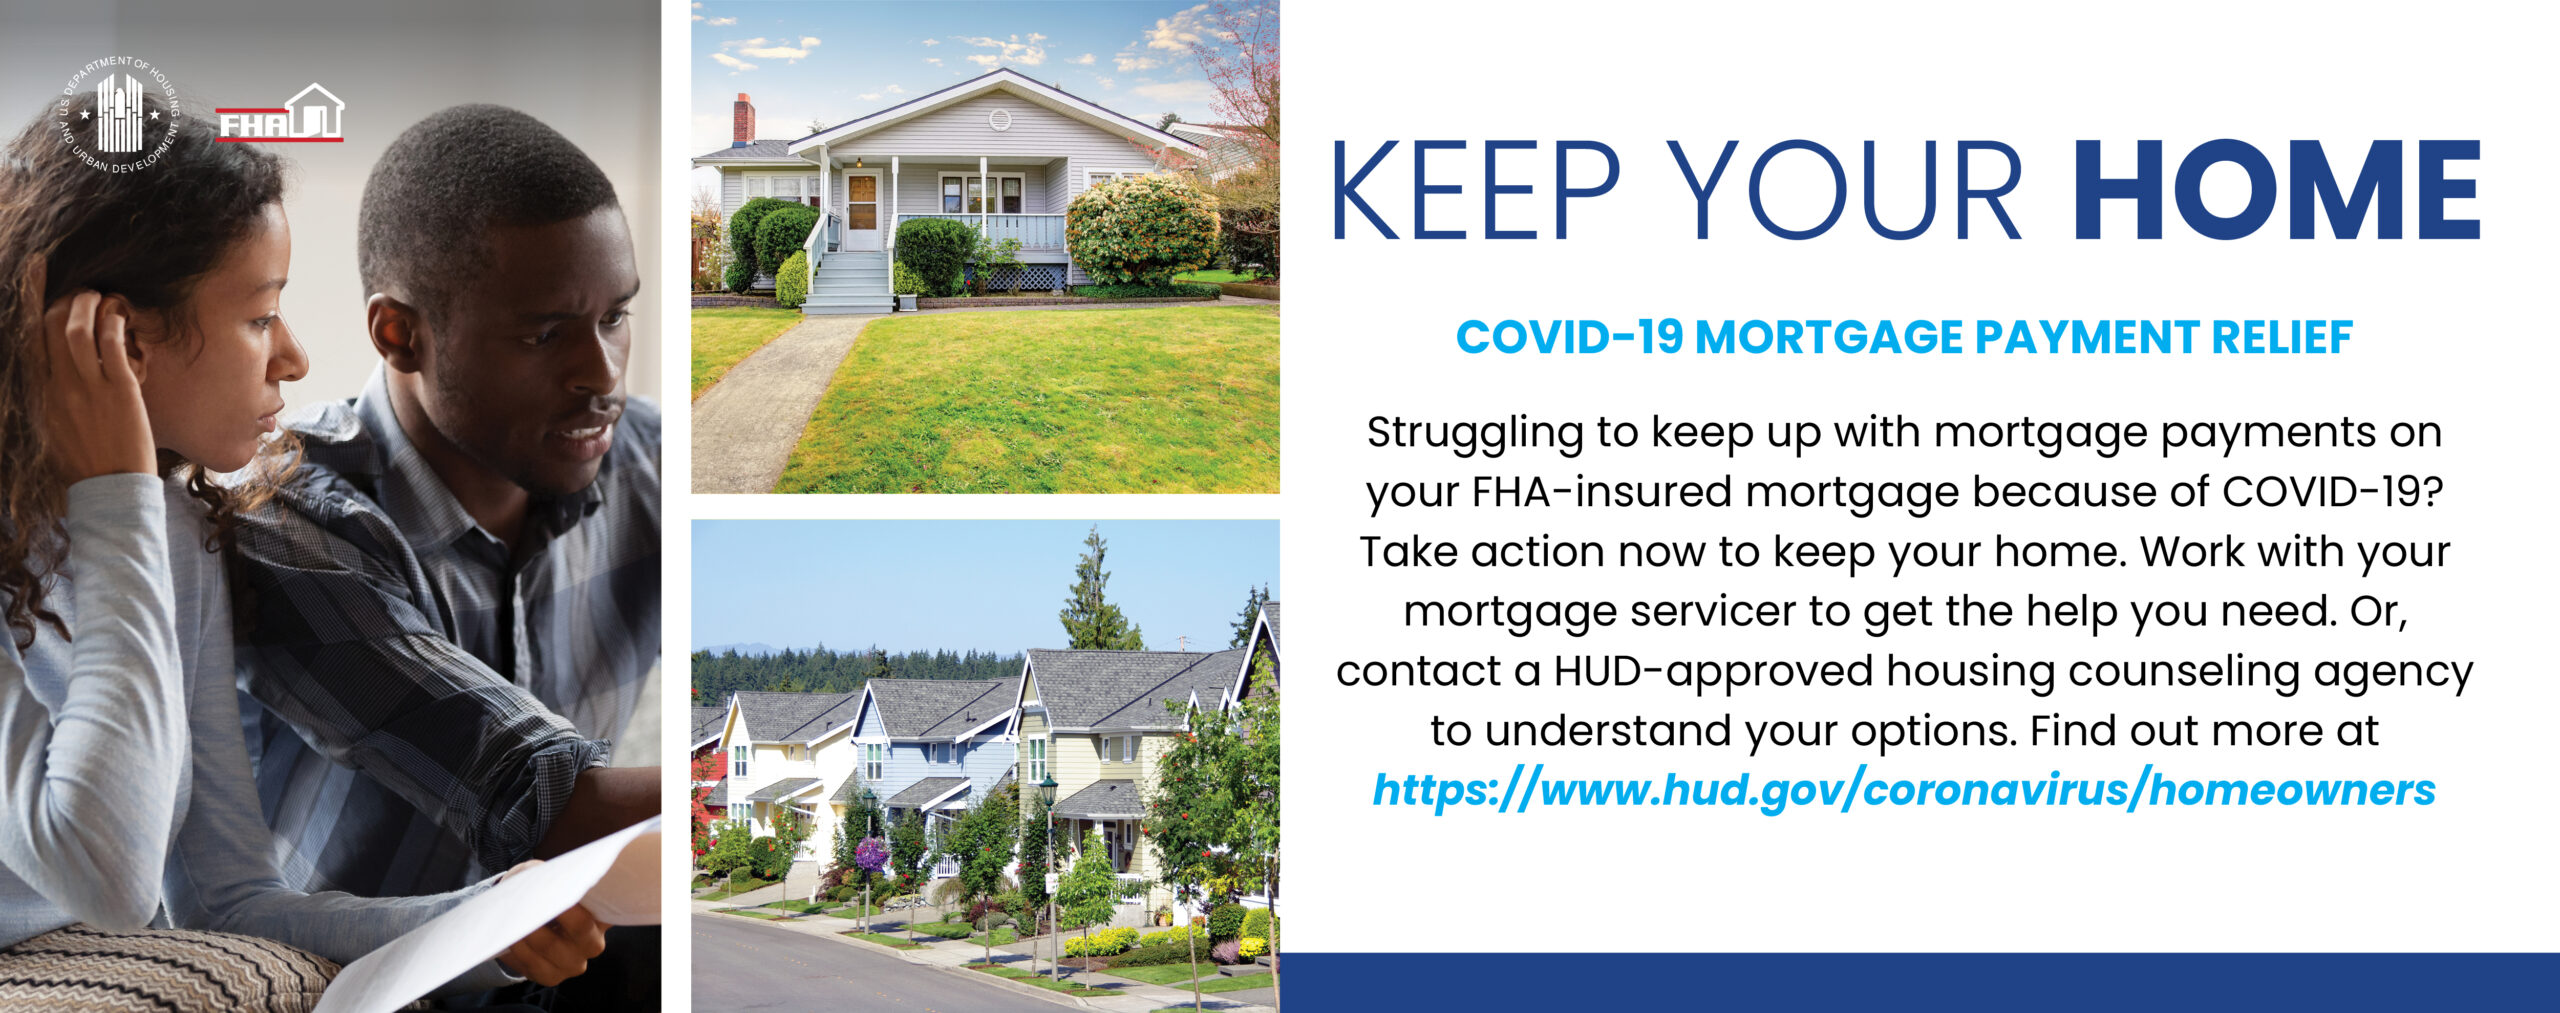 Keep your home, covid-19 mortgage payment relief image